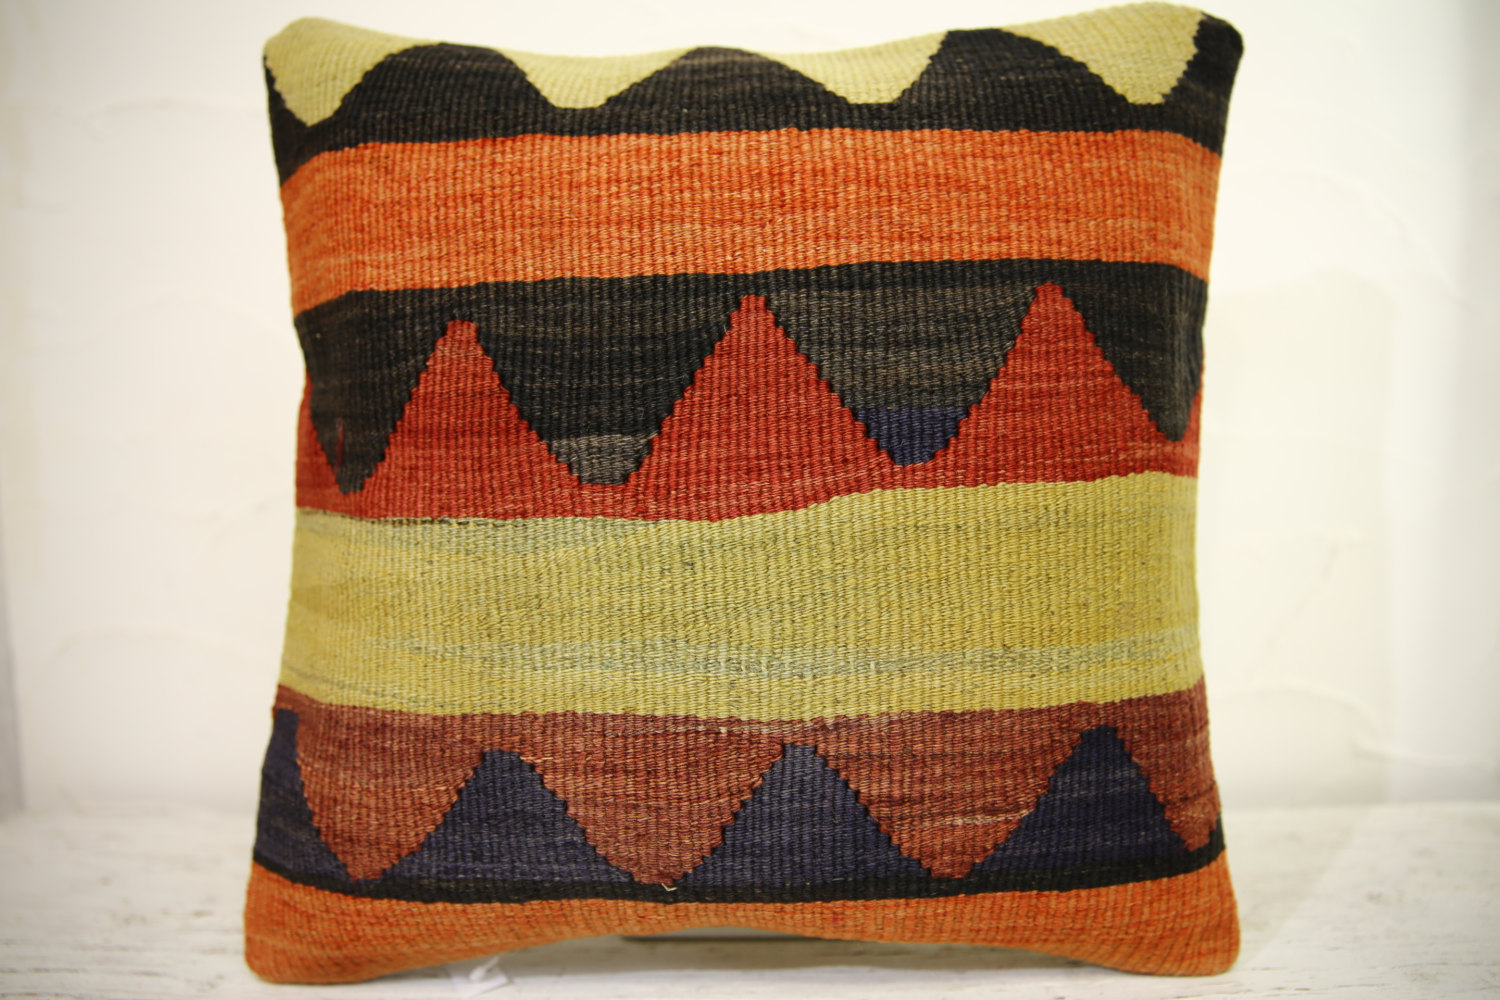 Kilim Pillows | 16x16 | Turkish pillows | 1230 | Accent Pillow,Decorative Pillow